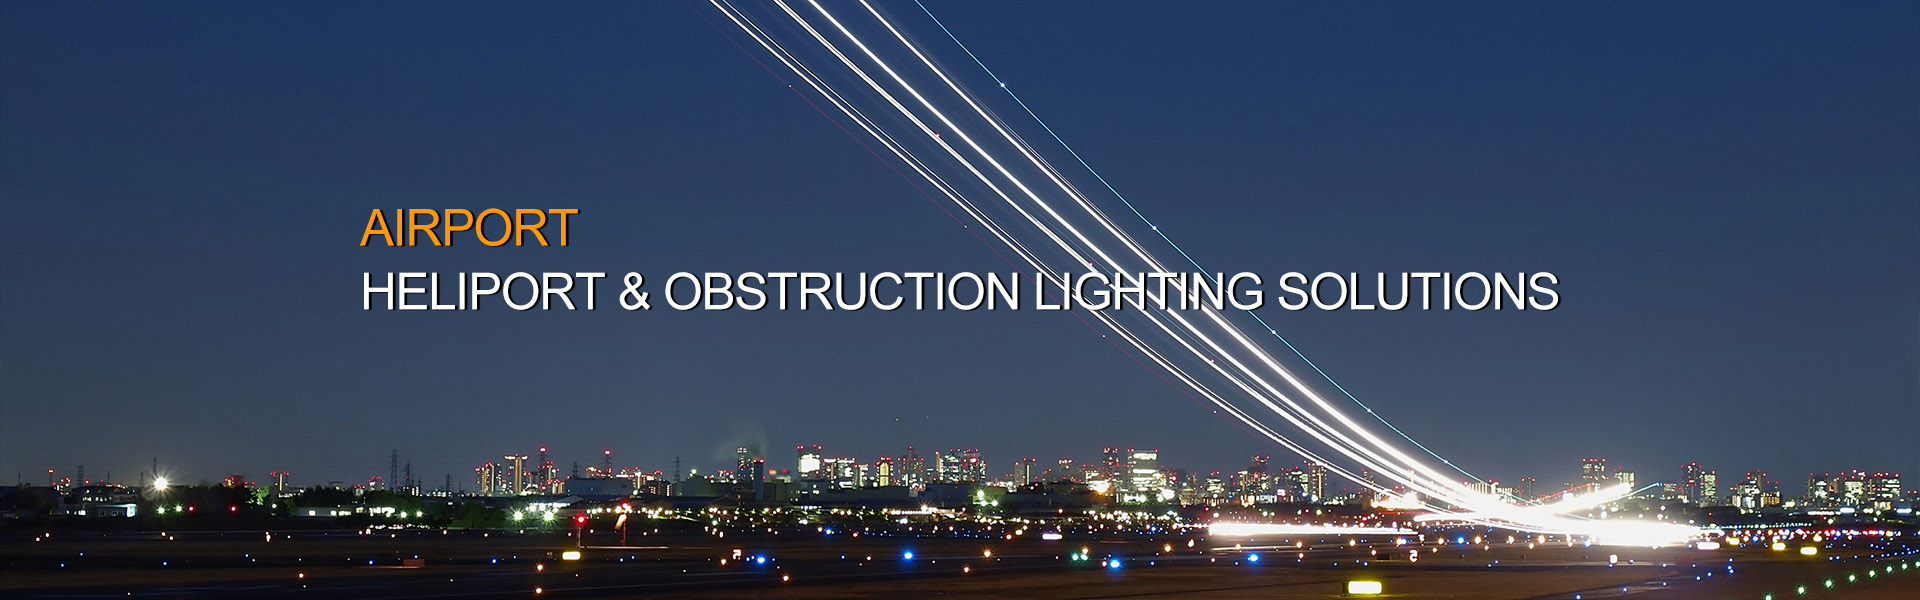 Airport, Heliport&Obstruction Lighting Solutions